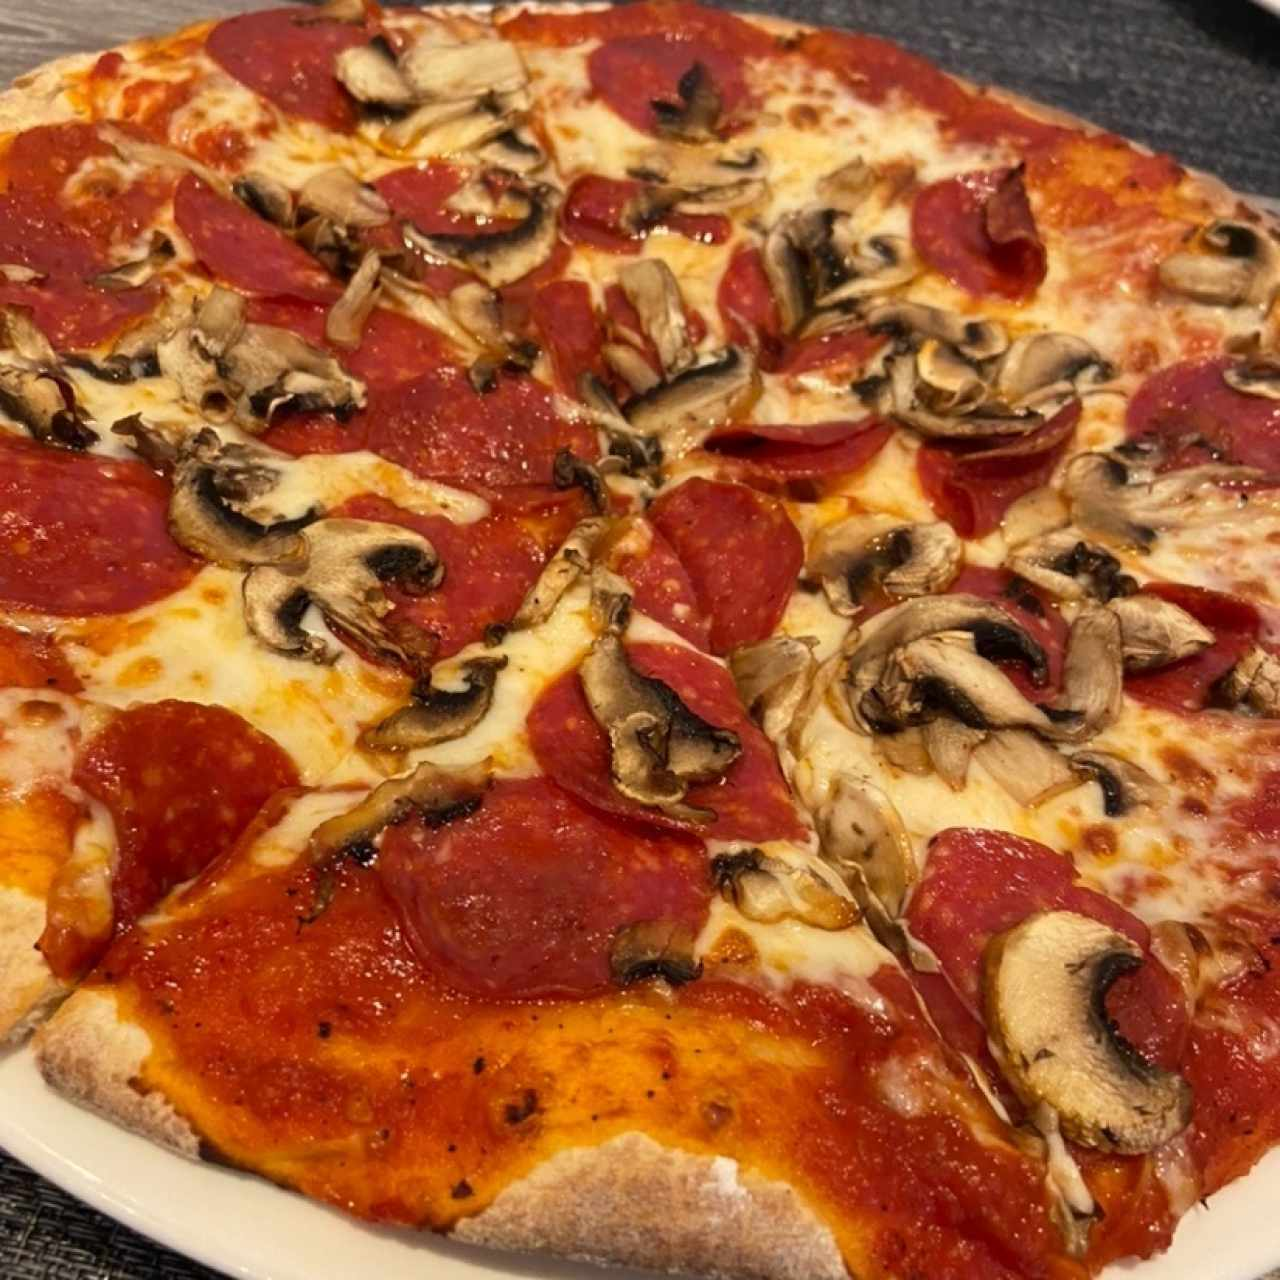 Pizza de pepperoni con hongos